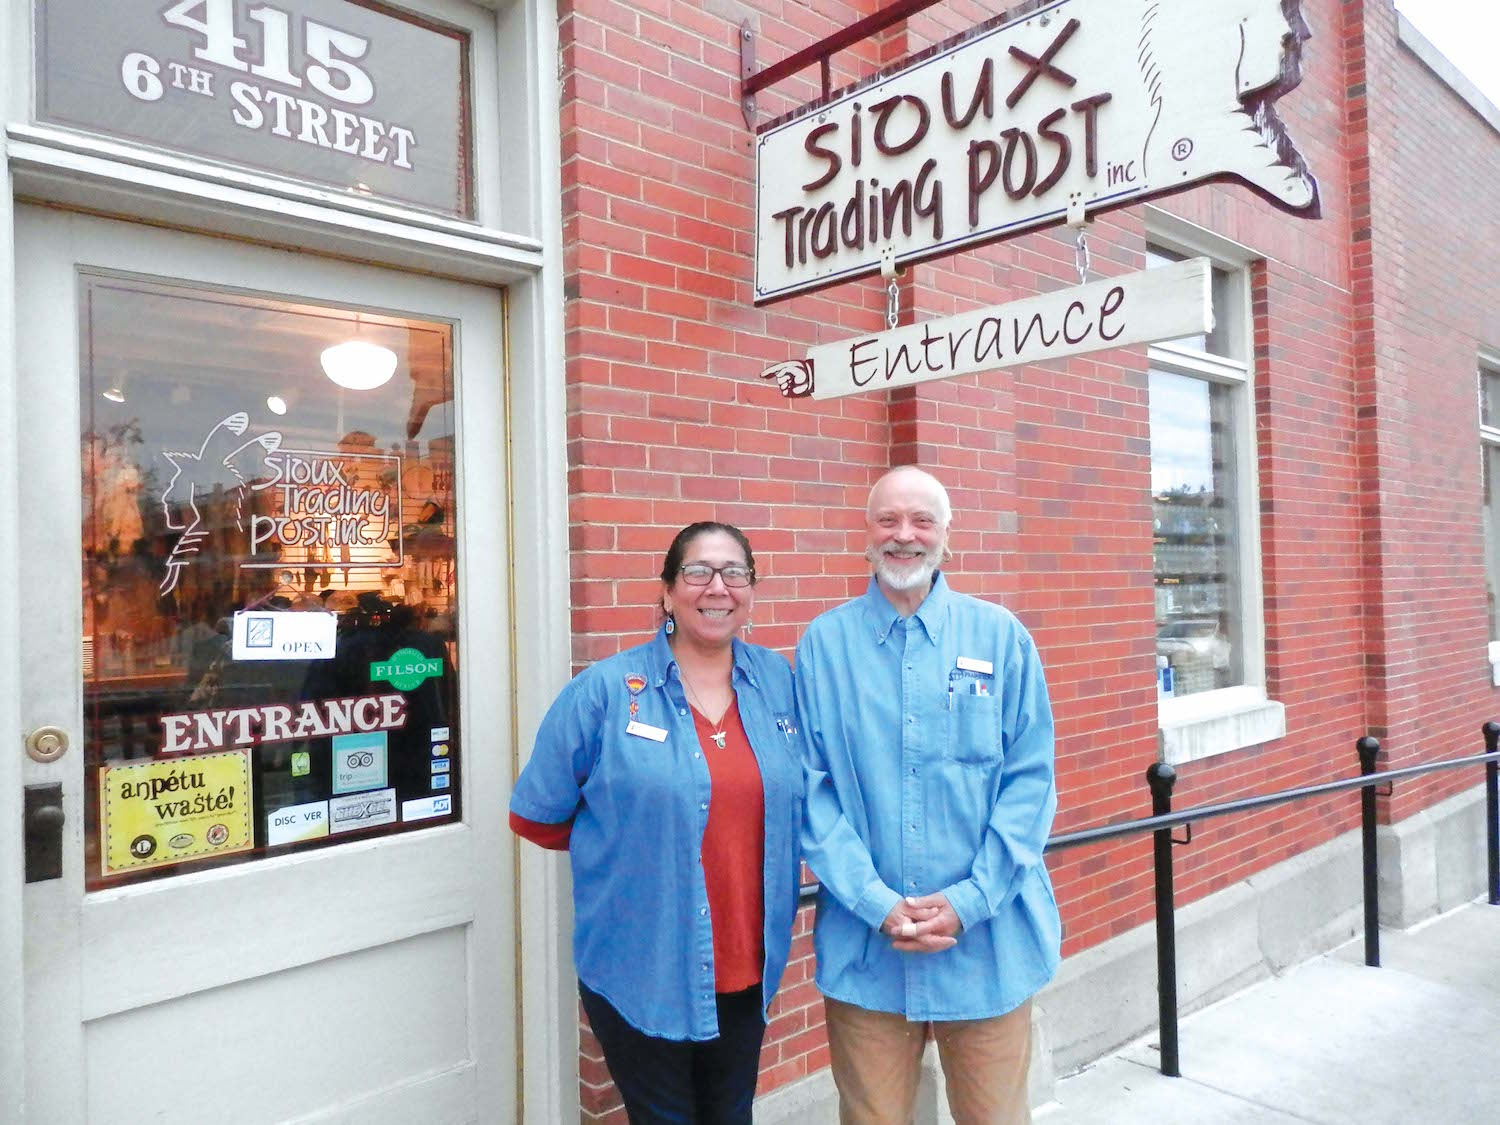 Native Sun News: Trading post manager retires after 28 years